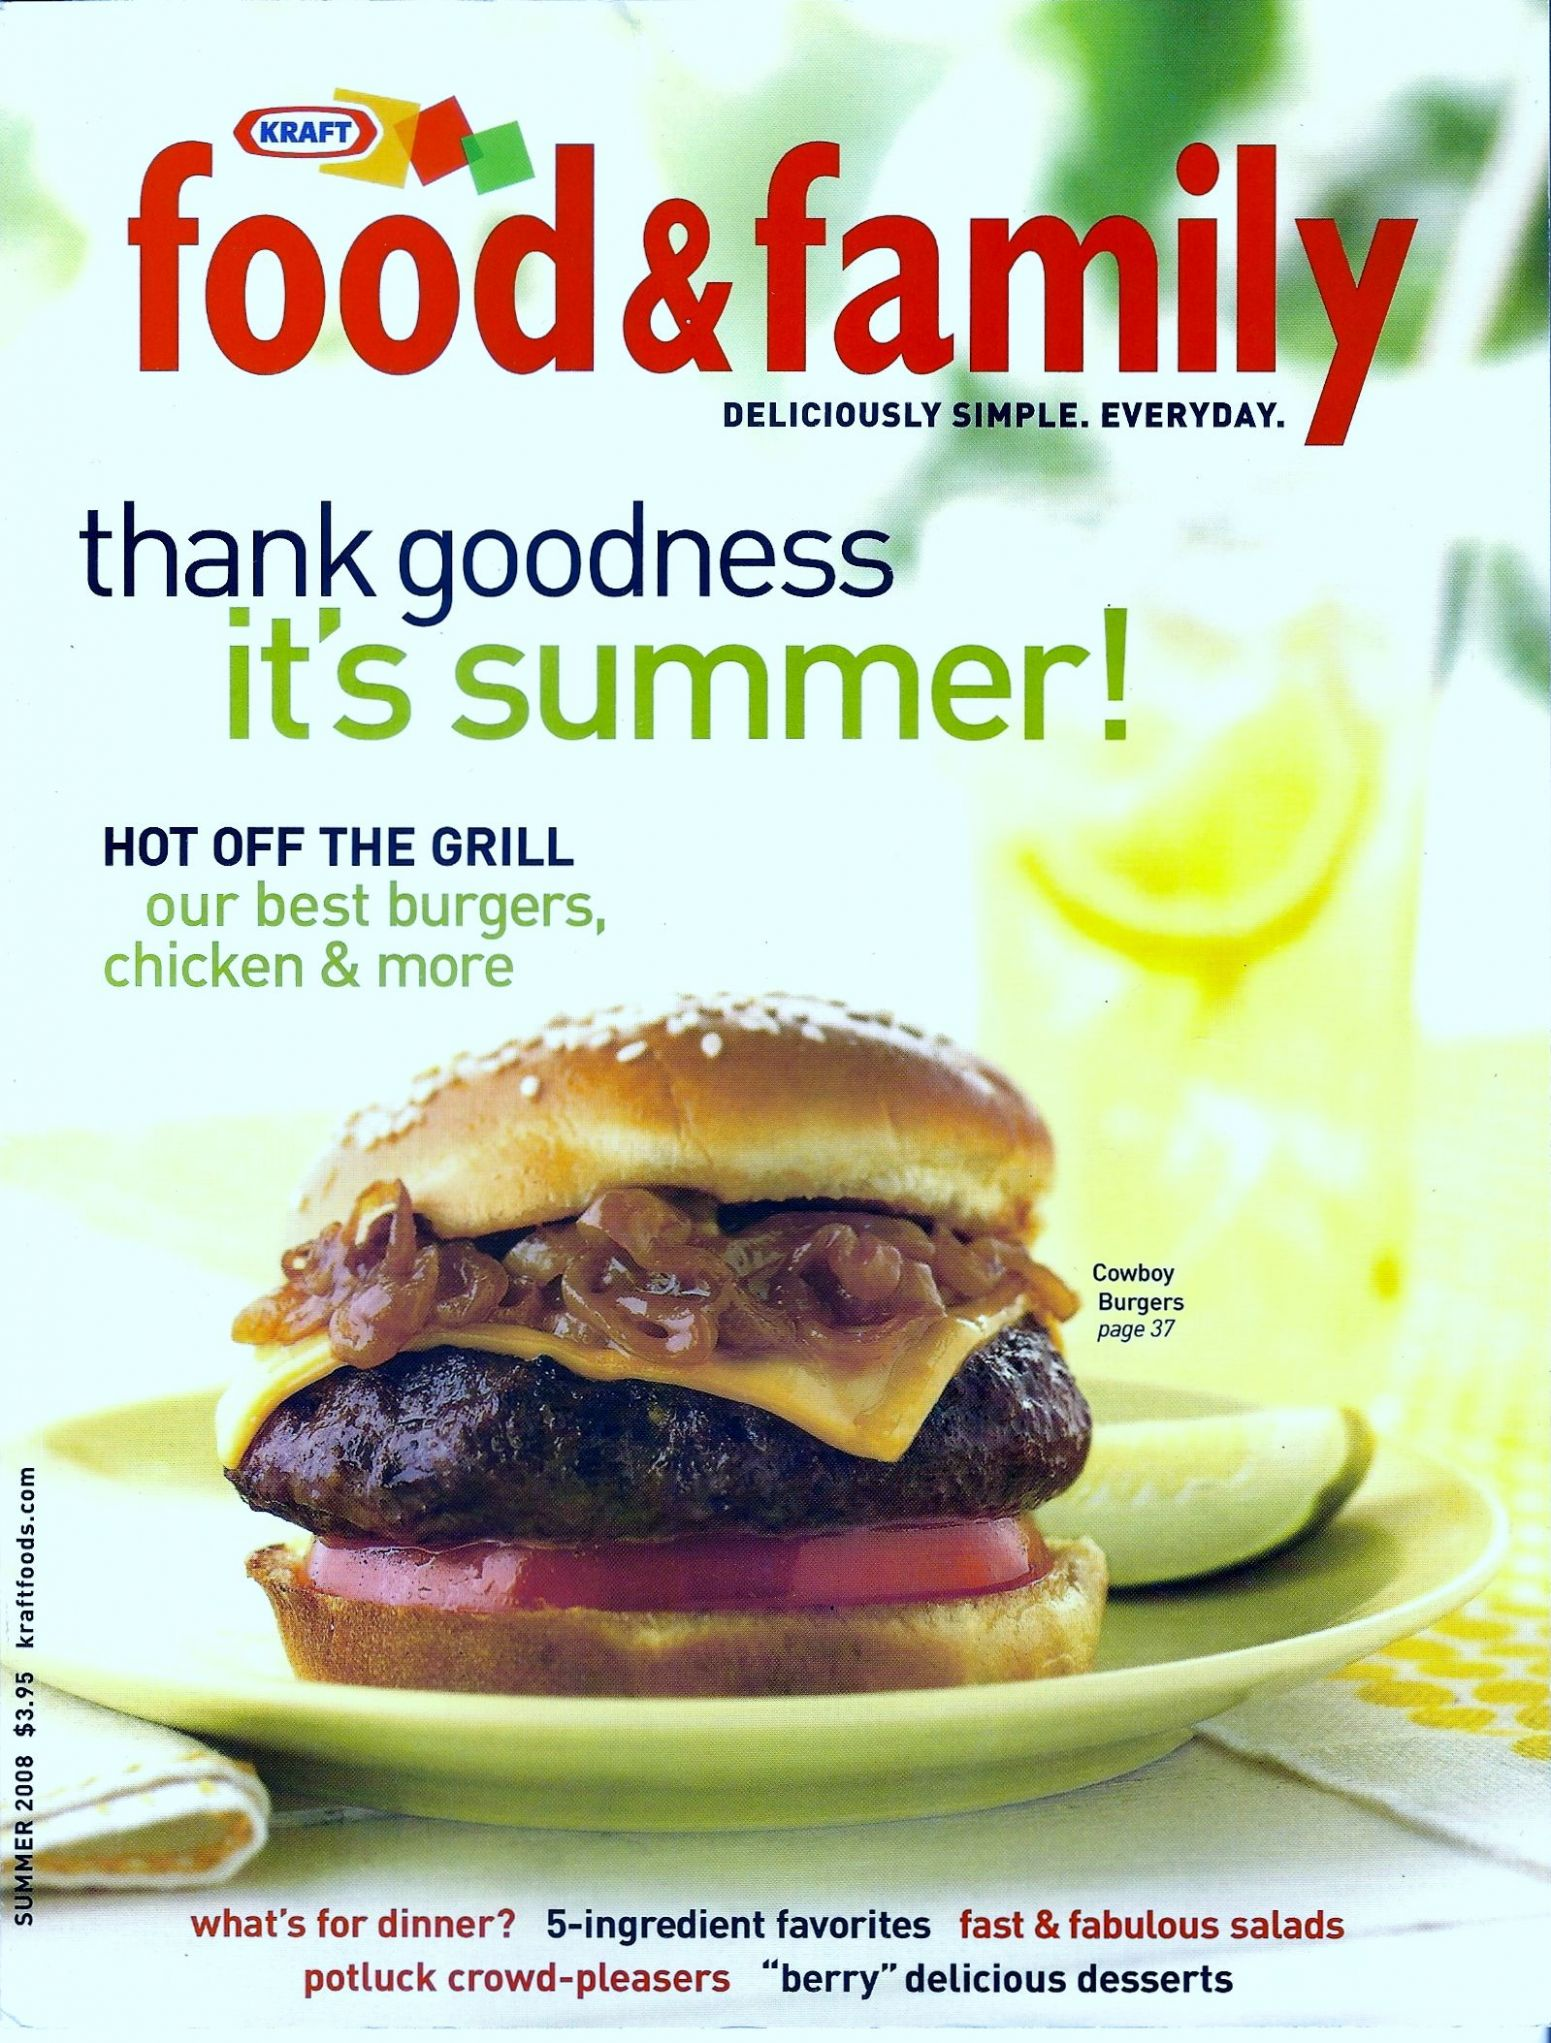 Kraft Food & Family Summer 10 | Cowboy burger recipes, Kraft ...